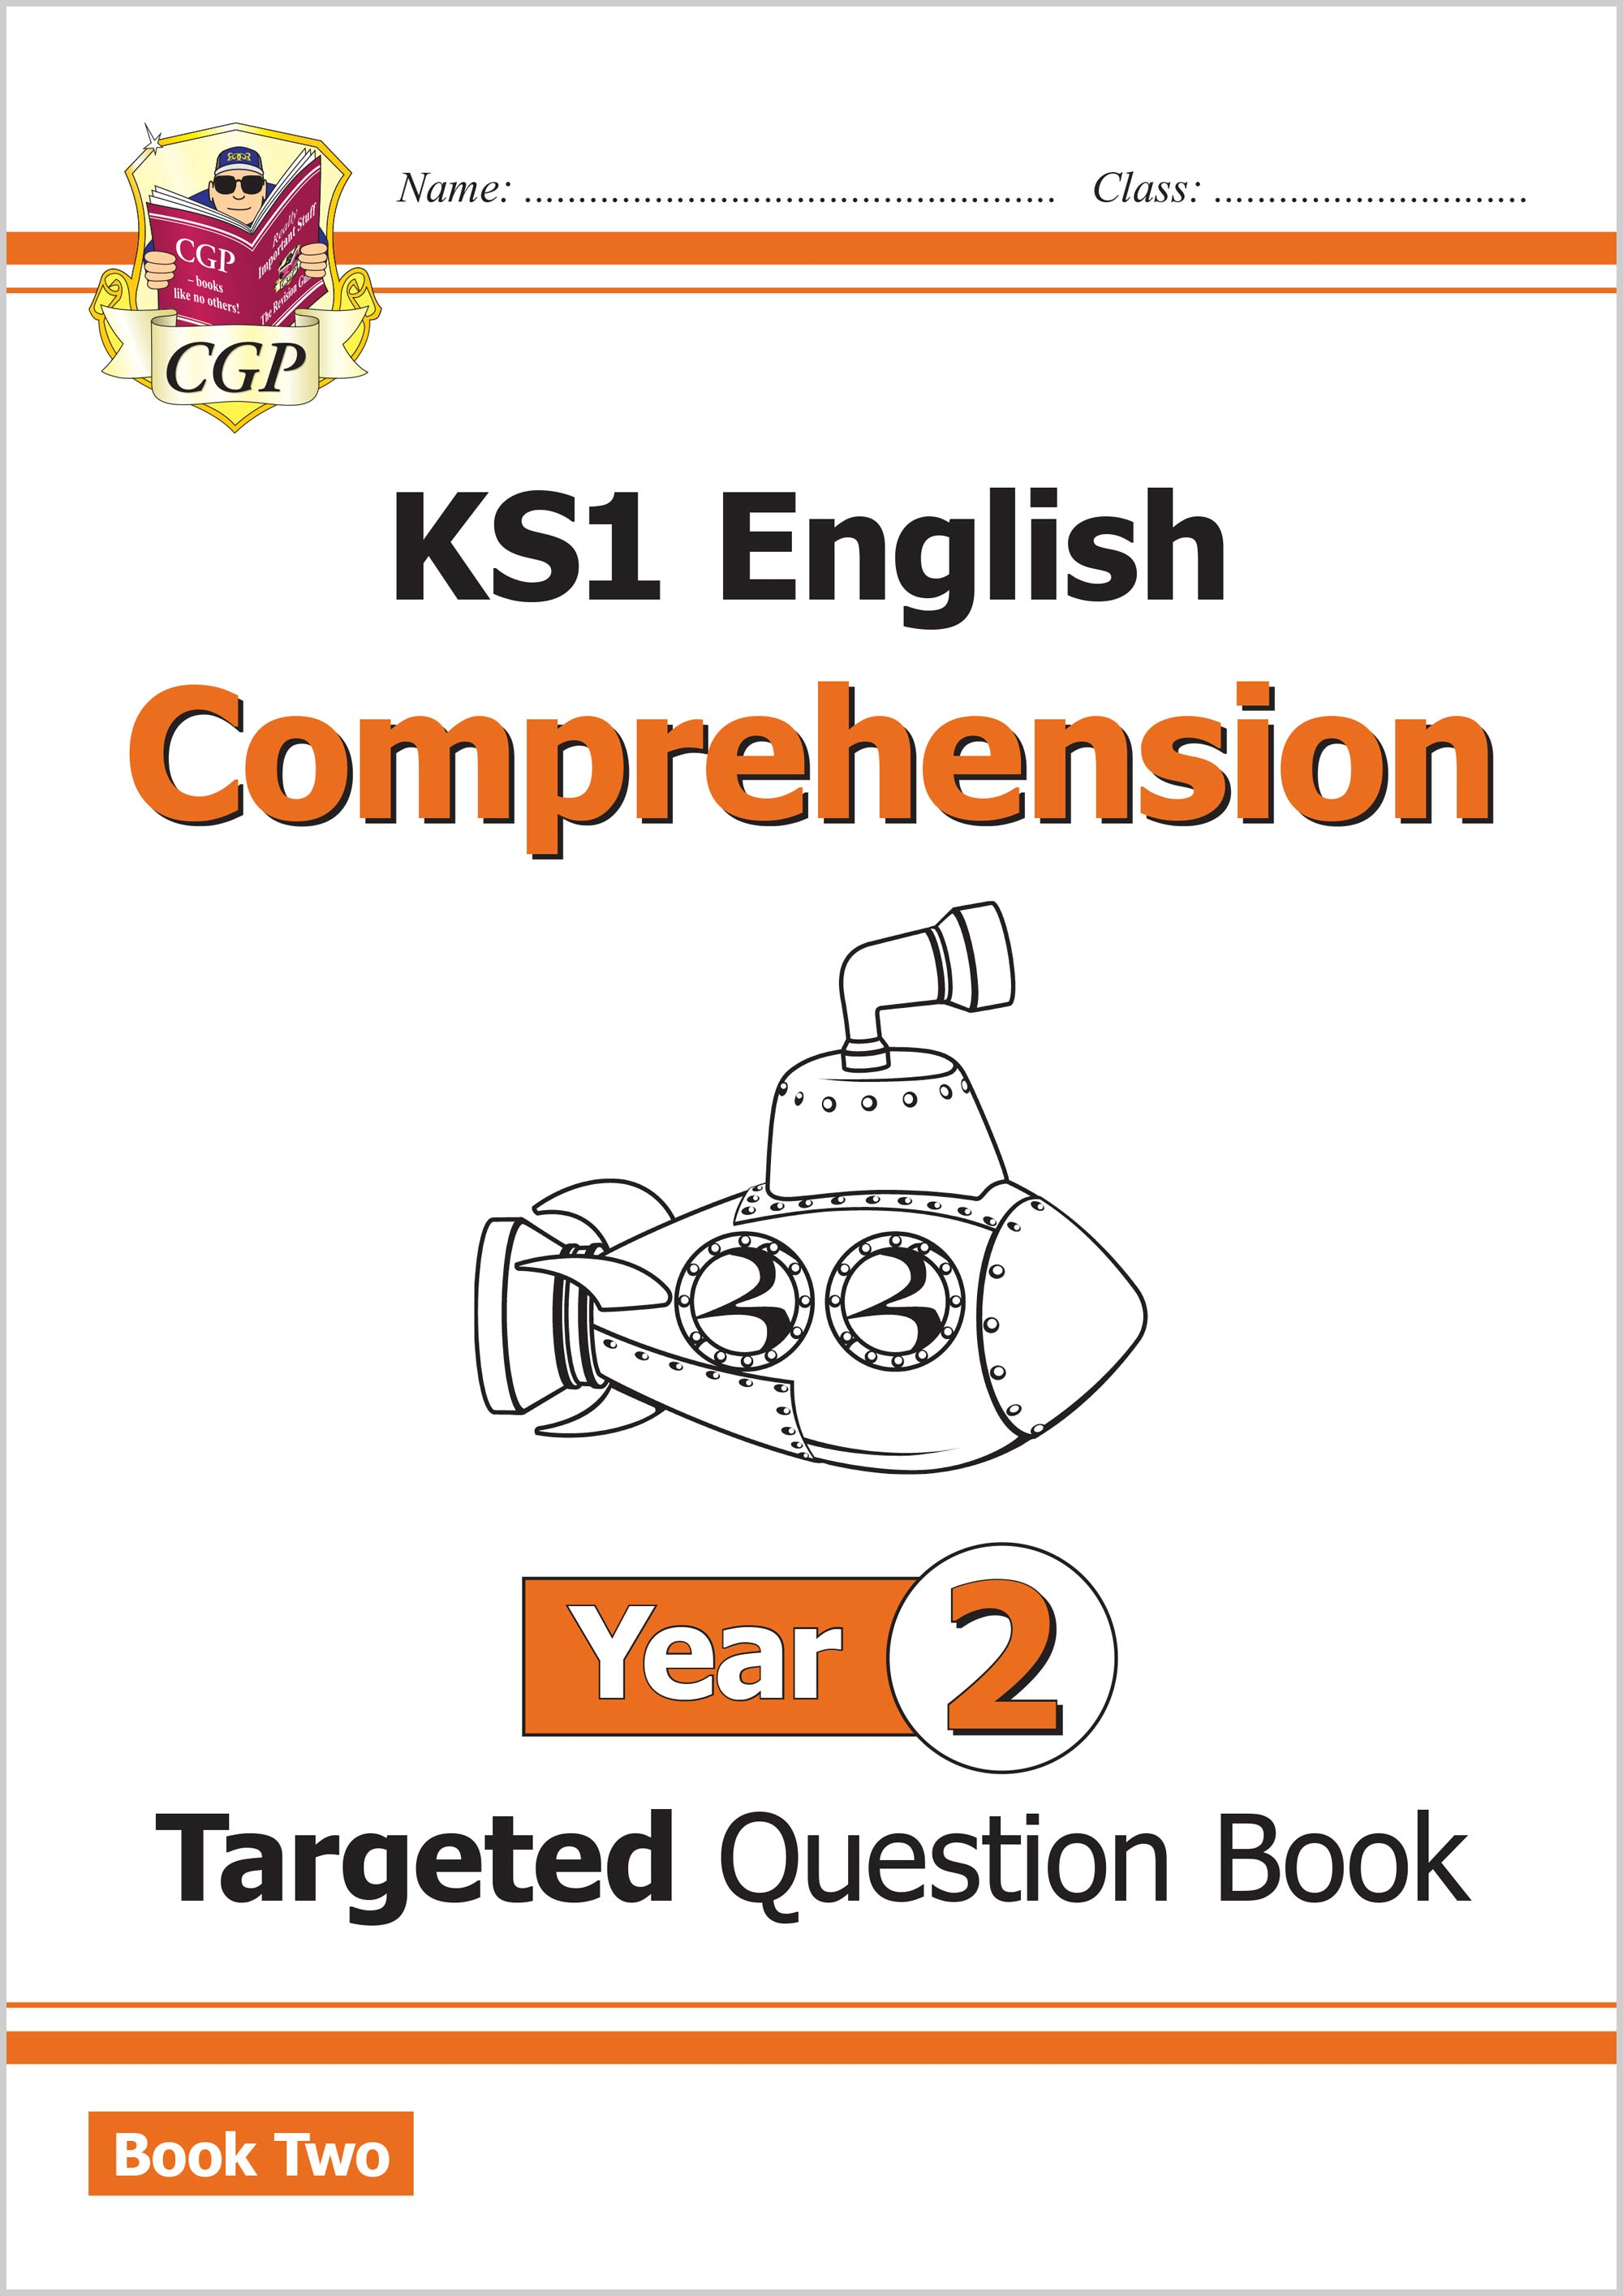 E2CW211 - New KS1 English Targeted Question Book: Year 2 Comprehension - Book 2